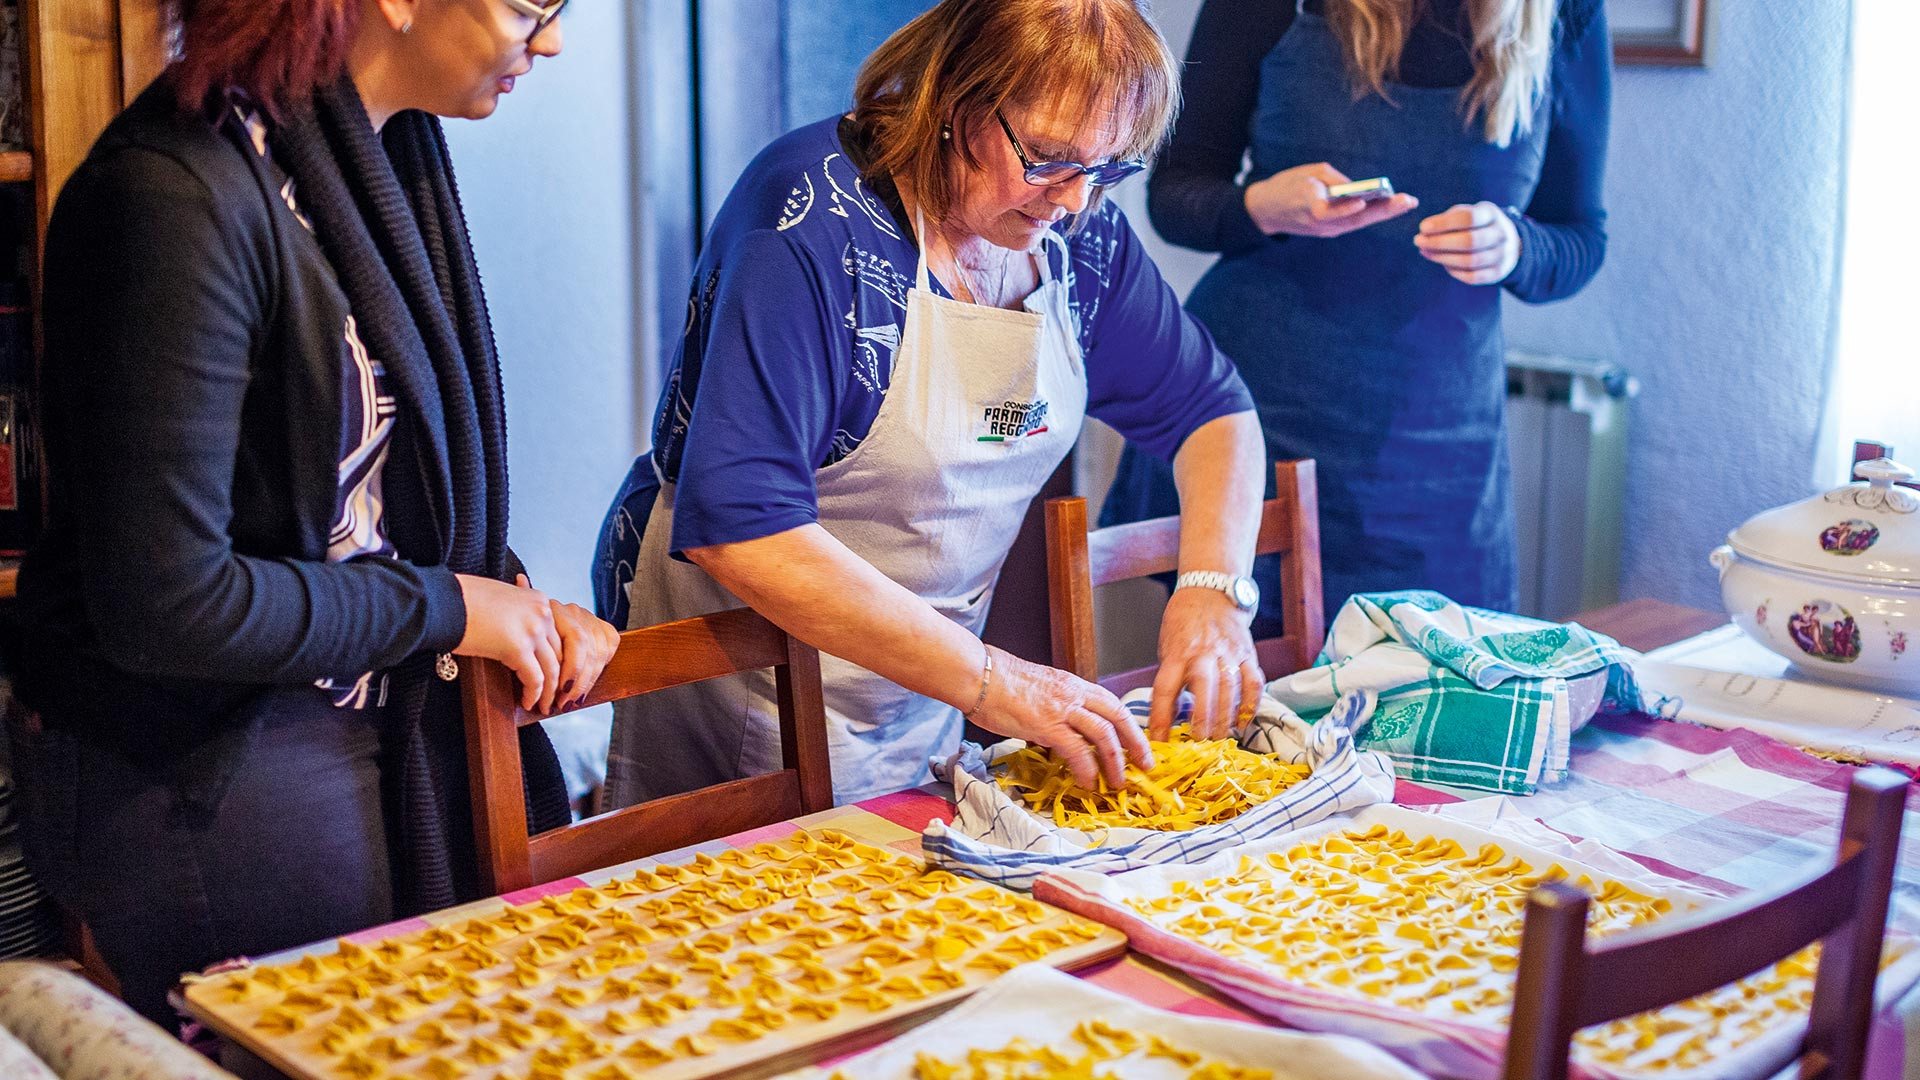 Vicky Smith gets a lesson in traditional Italian pasta making from Silvana Dall'Argine